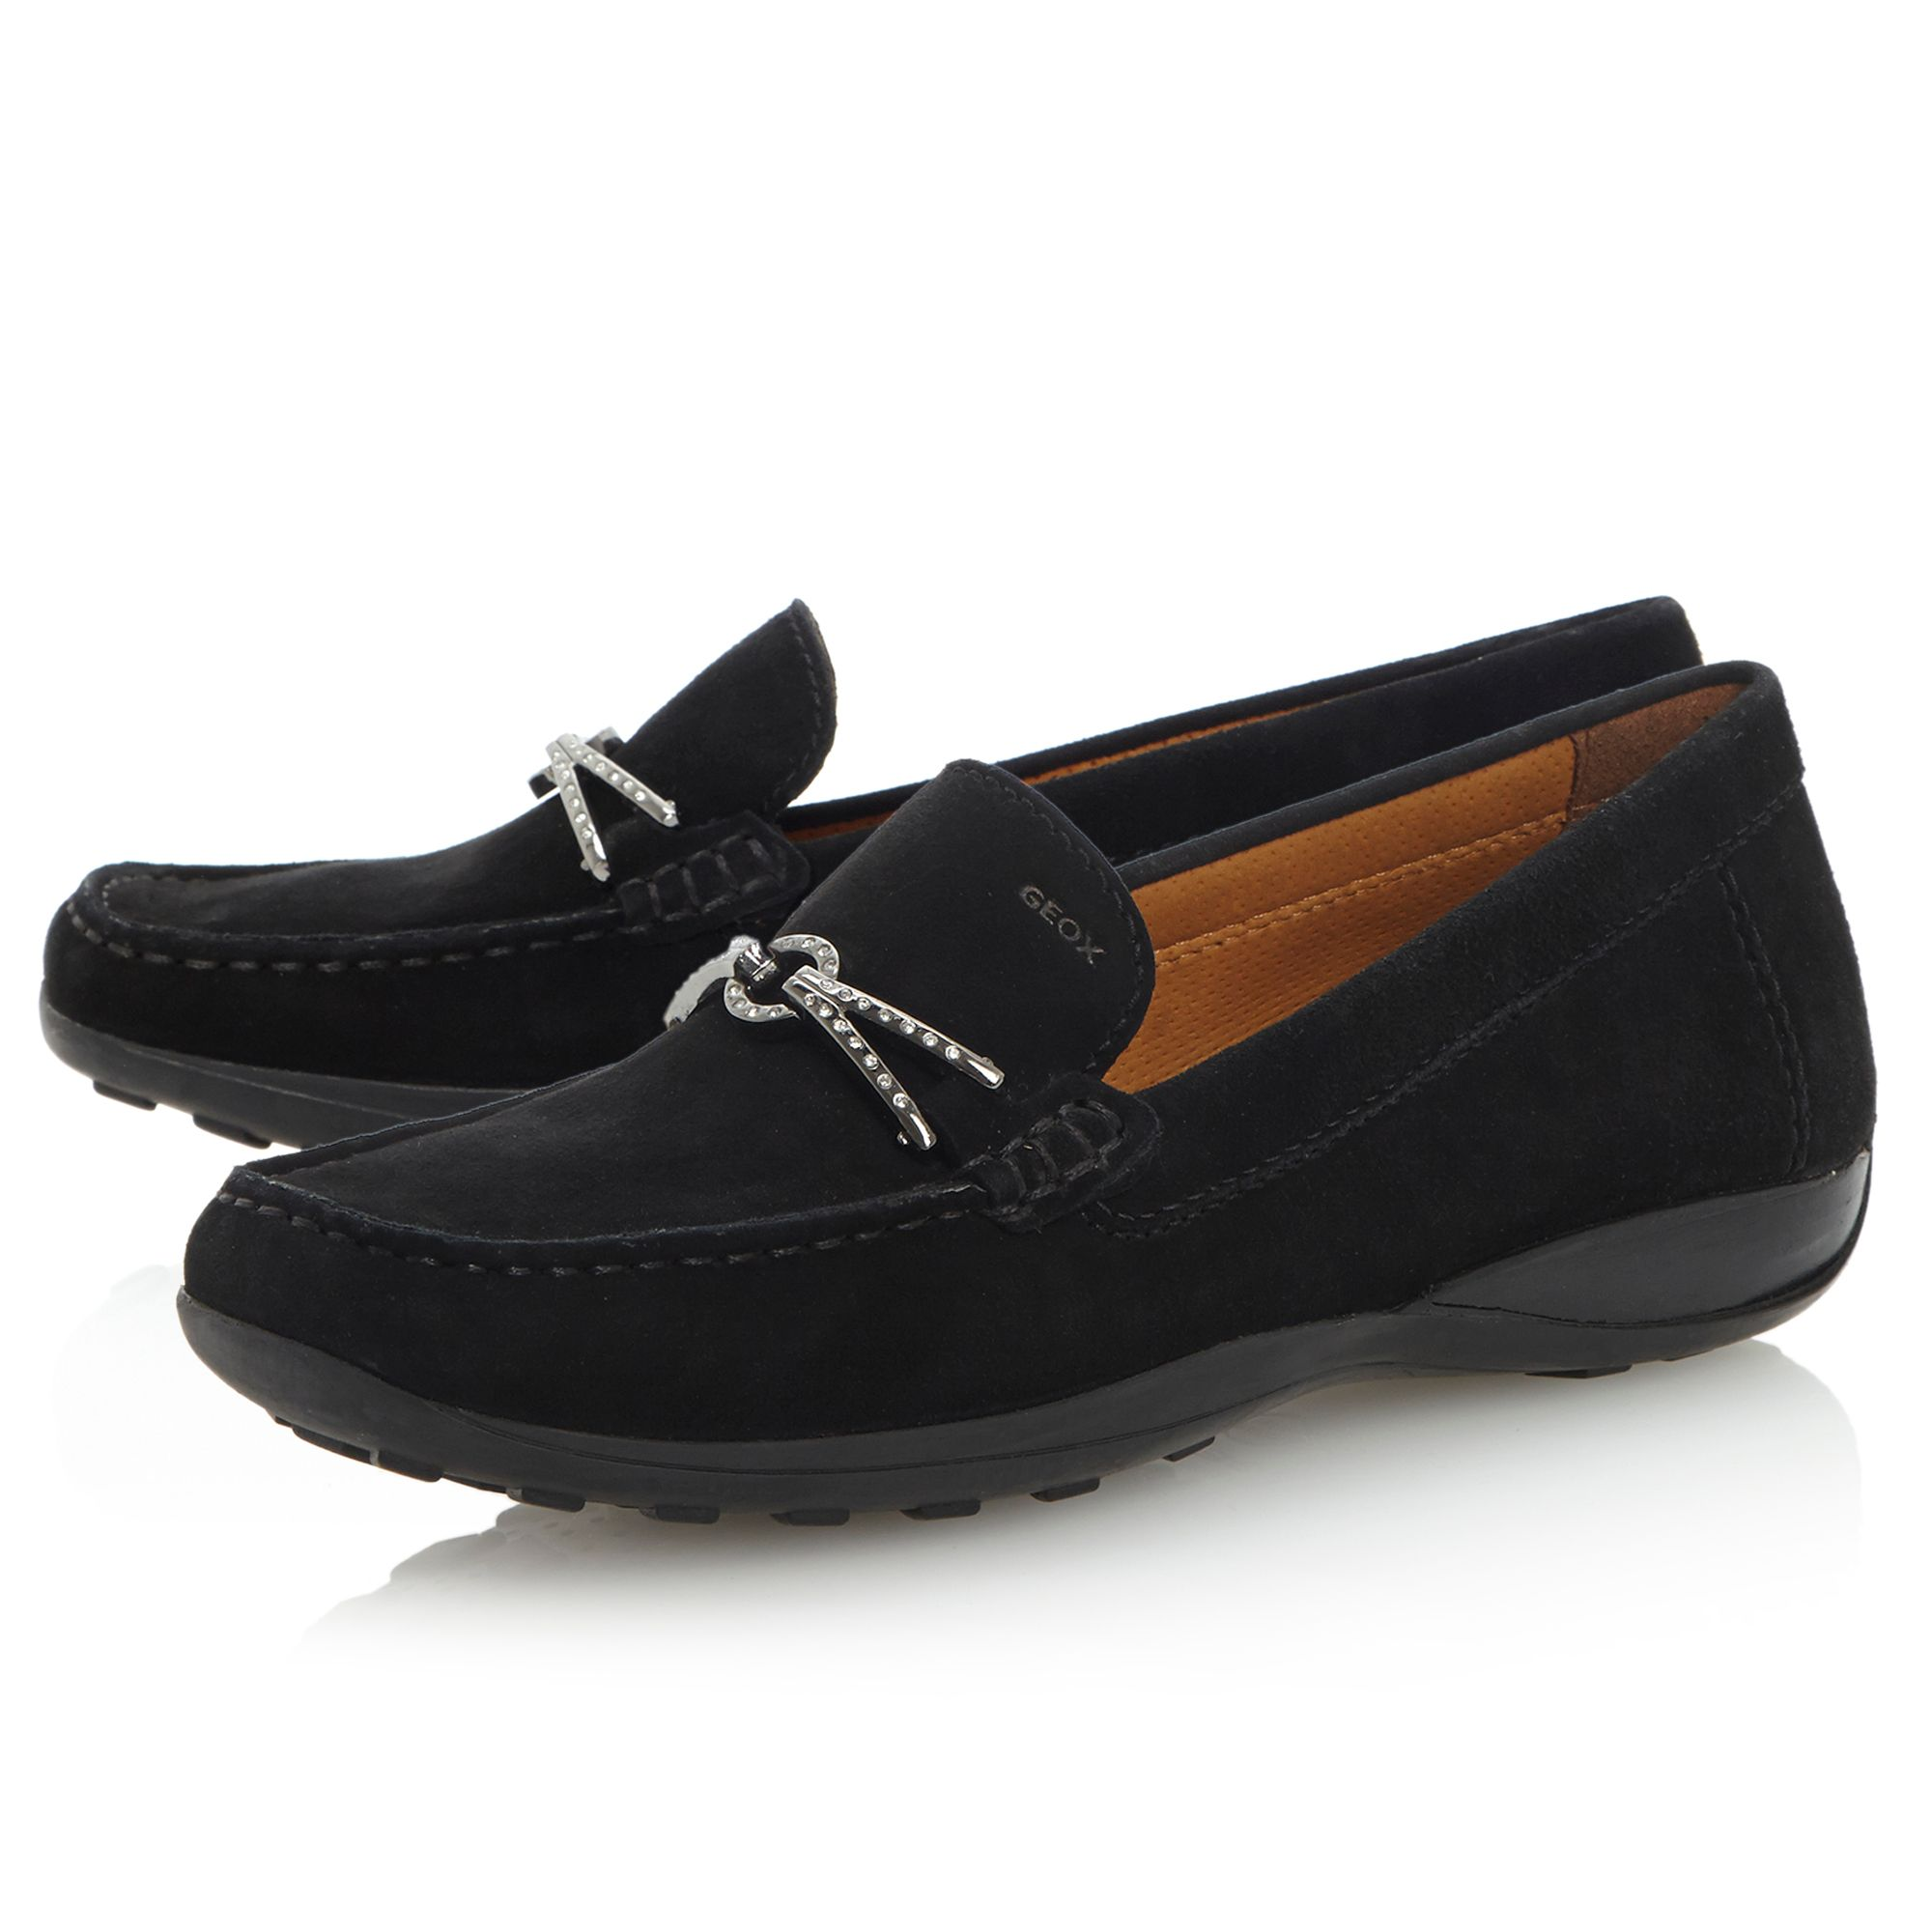 Winter Euro D34-diamonte snaffle moccasin shoes